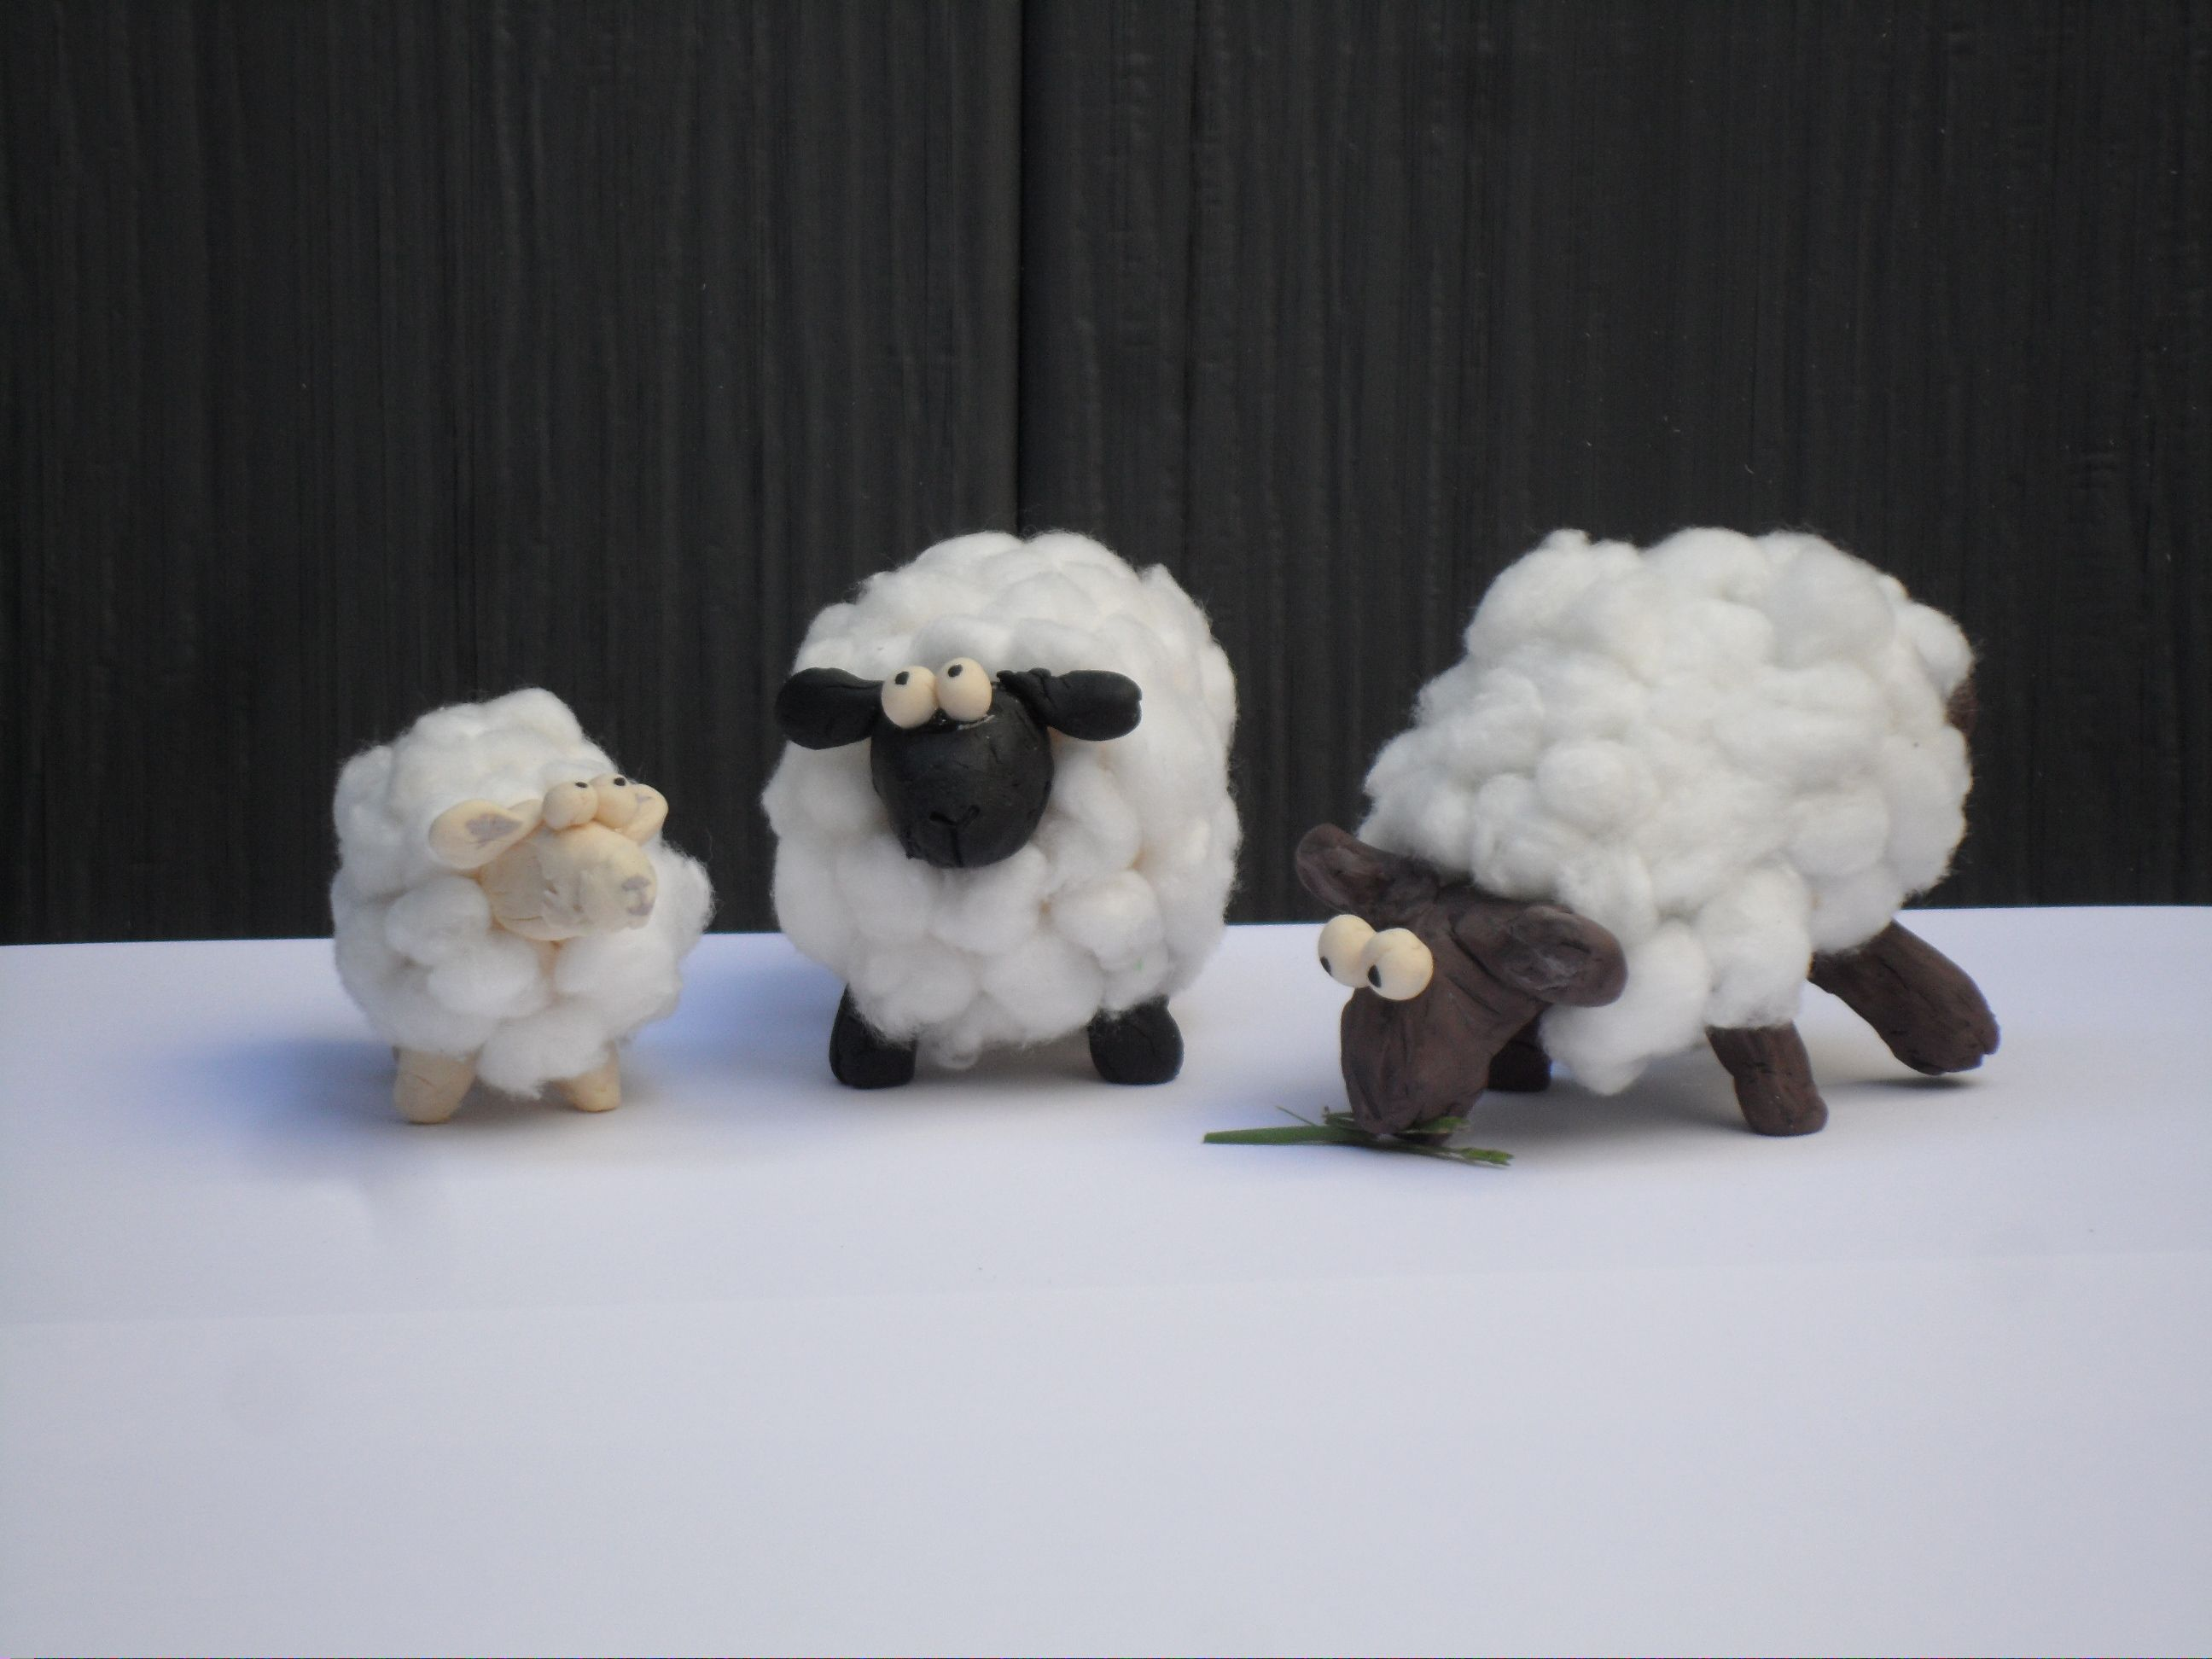 Diy How To Make Farm S Sheep 3 Poses Eid Adha Decoration From Paper And Cotton خروف عيد الاضحى Diy Renovation Creative Diy